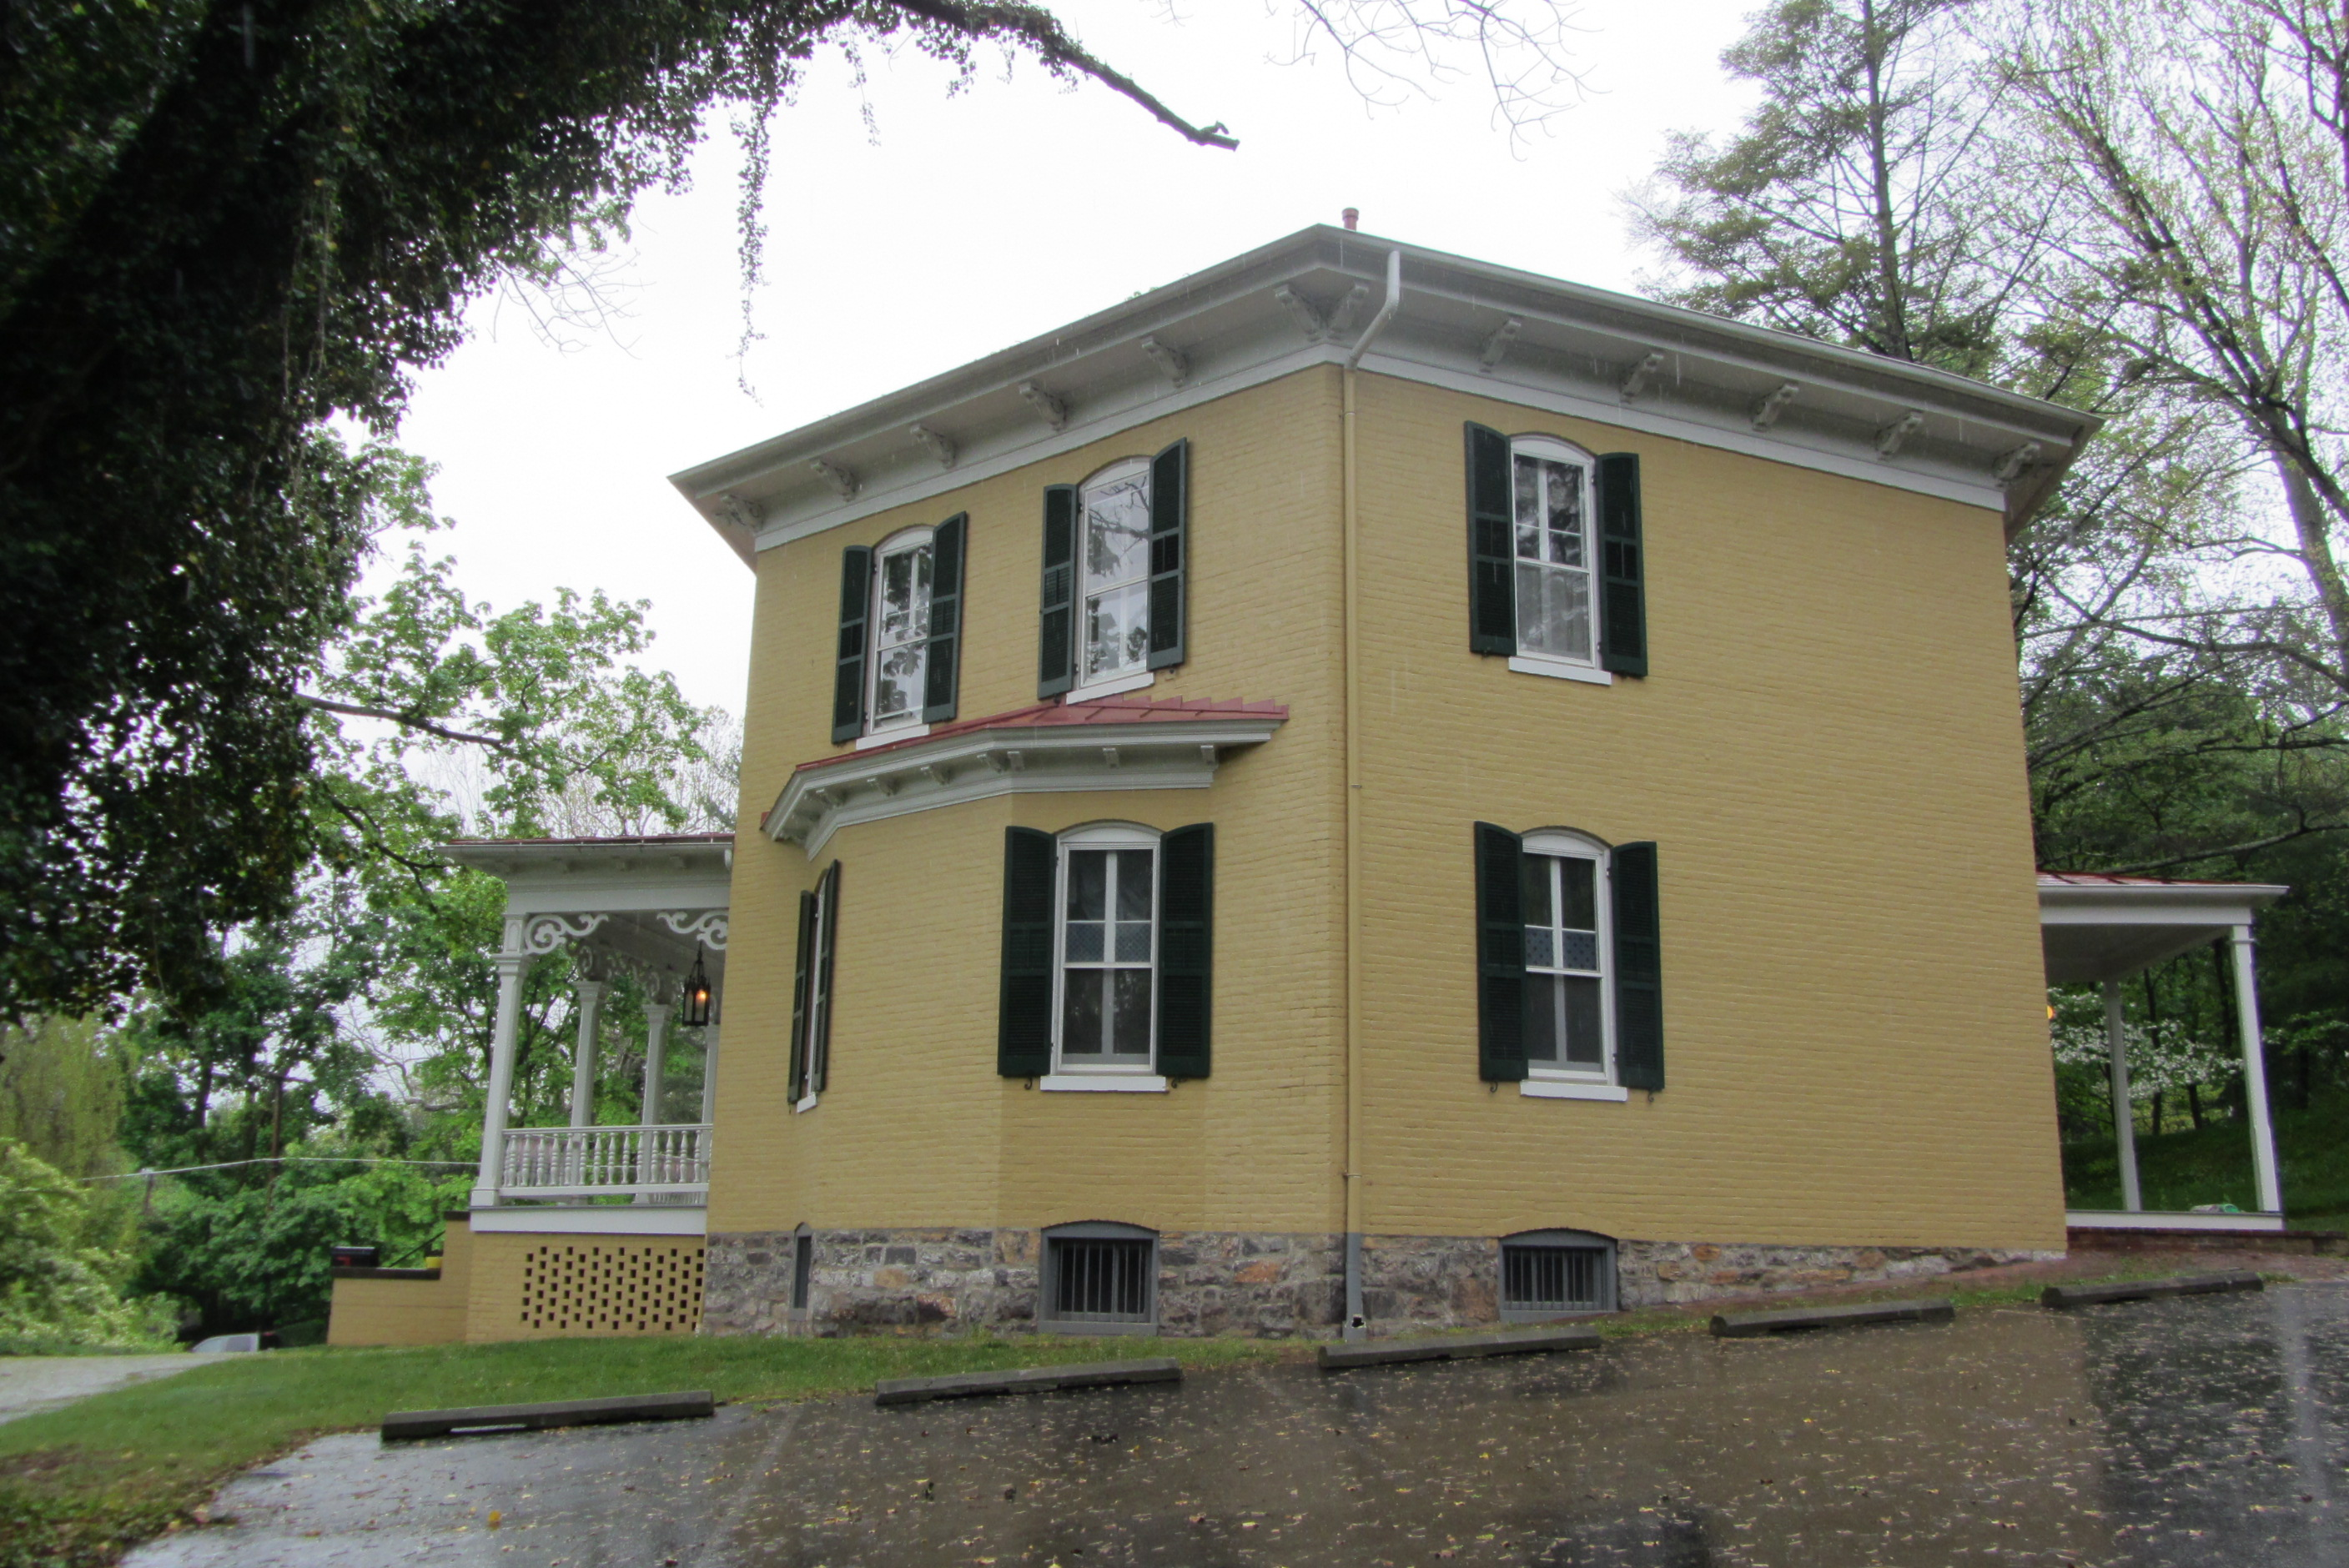 File Winchesterva Hexagonhouse Sideview Jpg Wikimedia